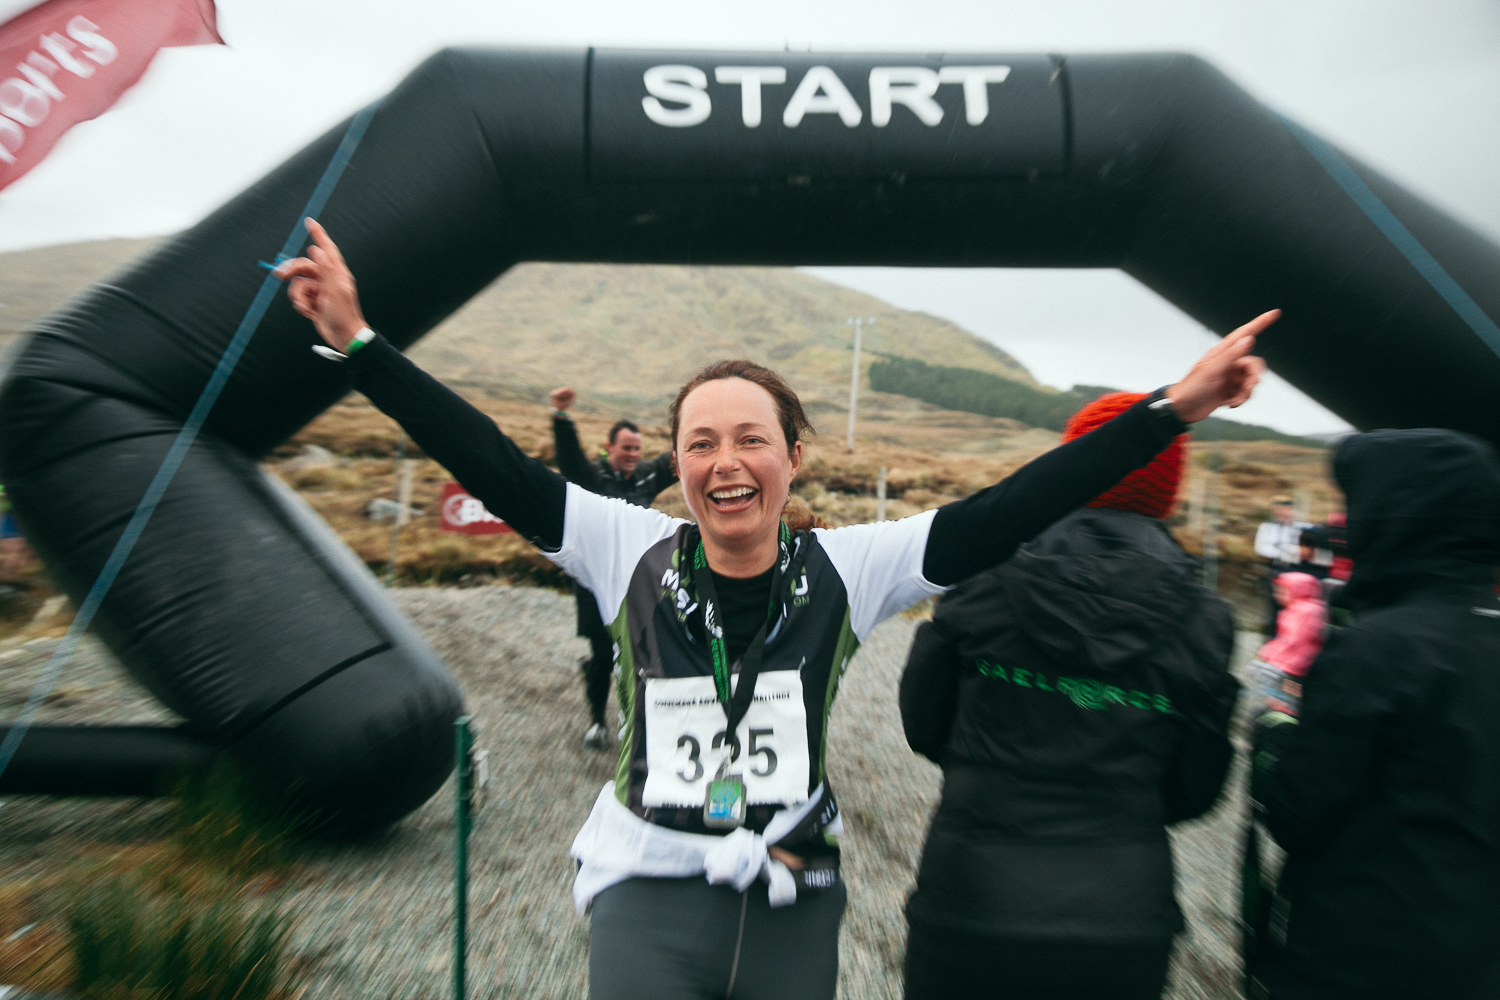 Cara-september-wacky-races-adventure-run-connemara_13